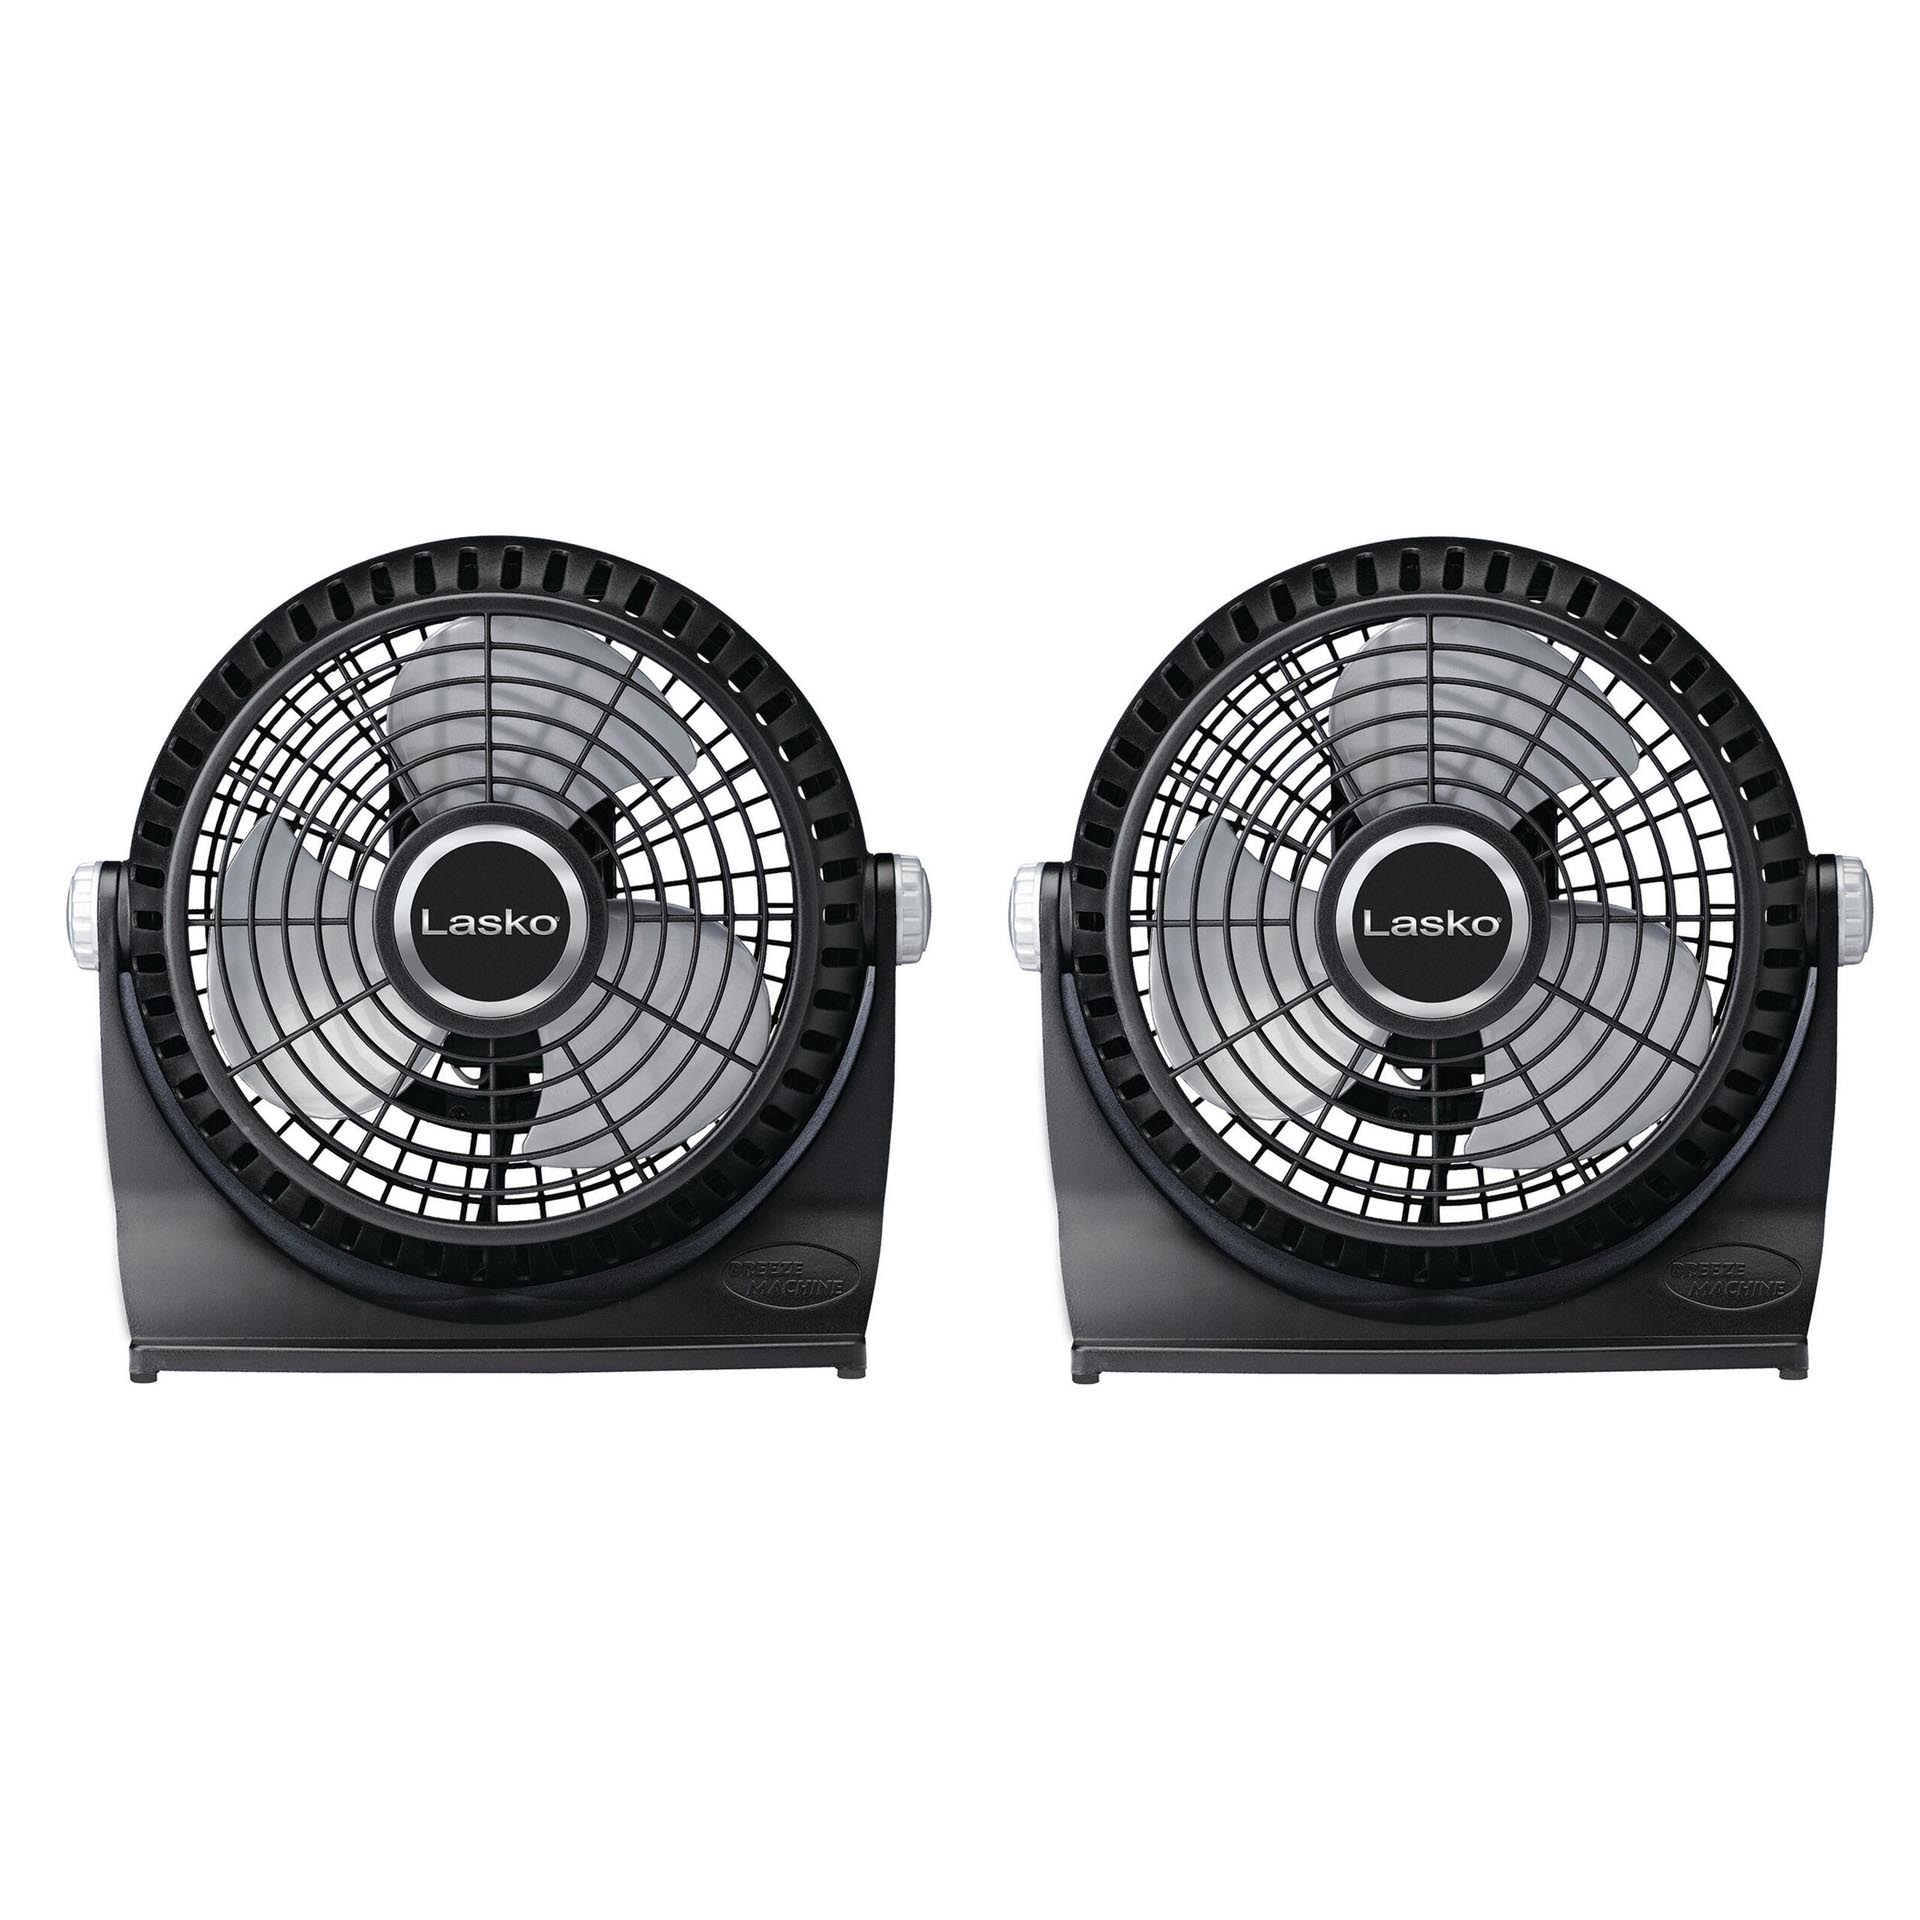 Small Electric Fans Kamisco